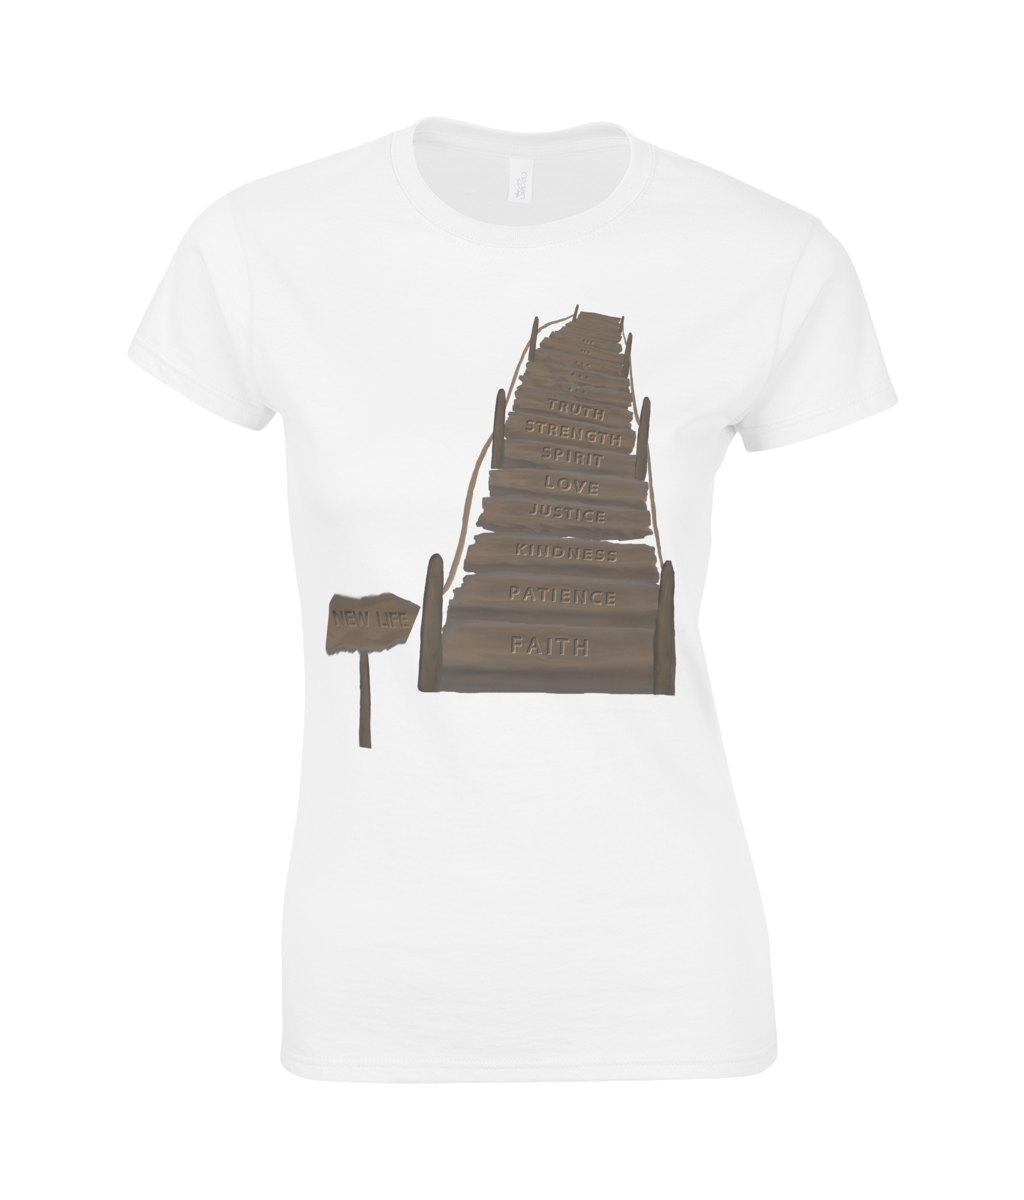 The bridge of life - T-shirt Premium Classic